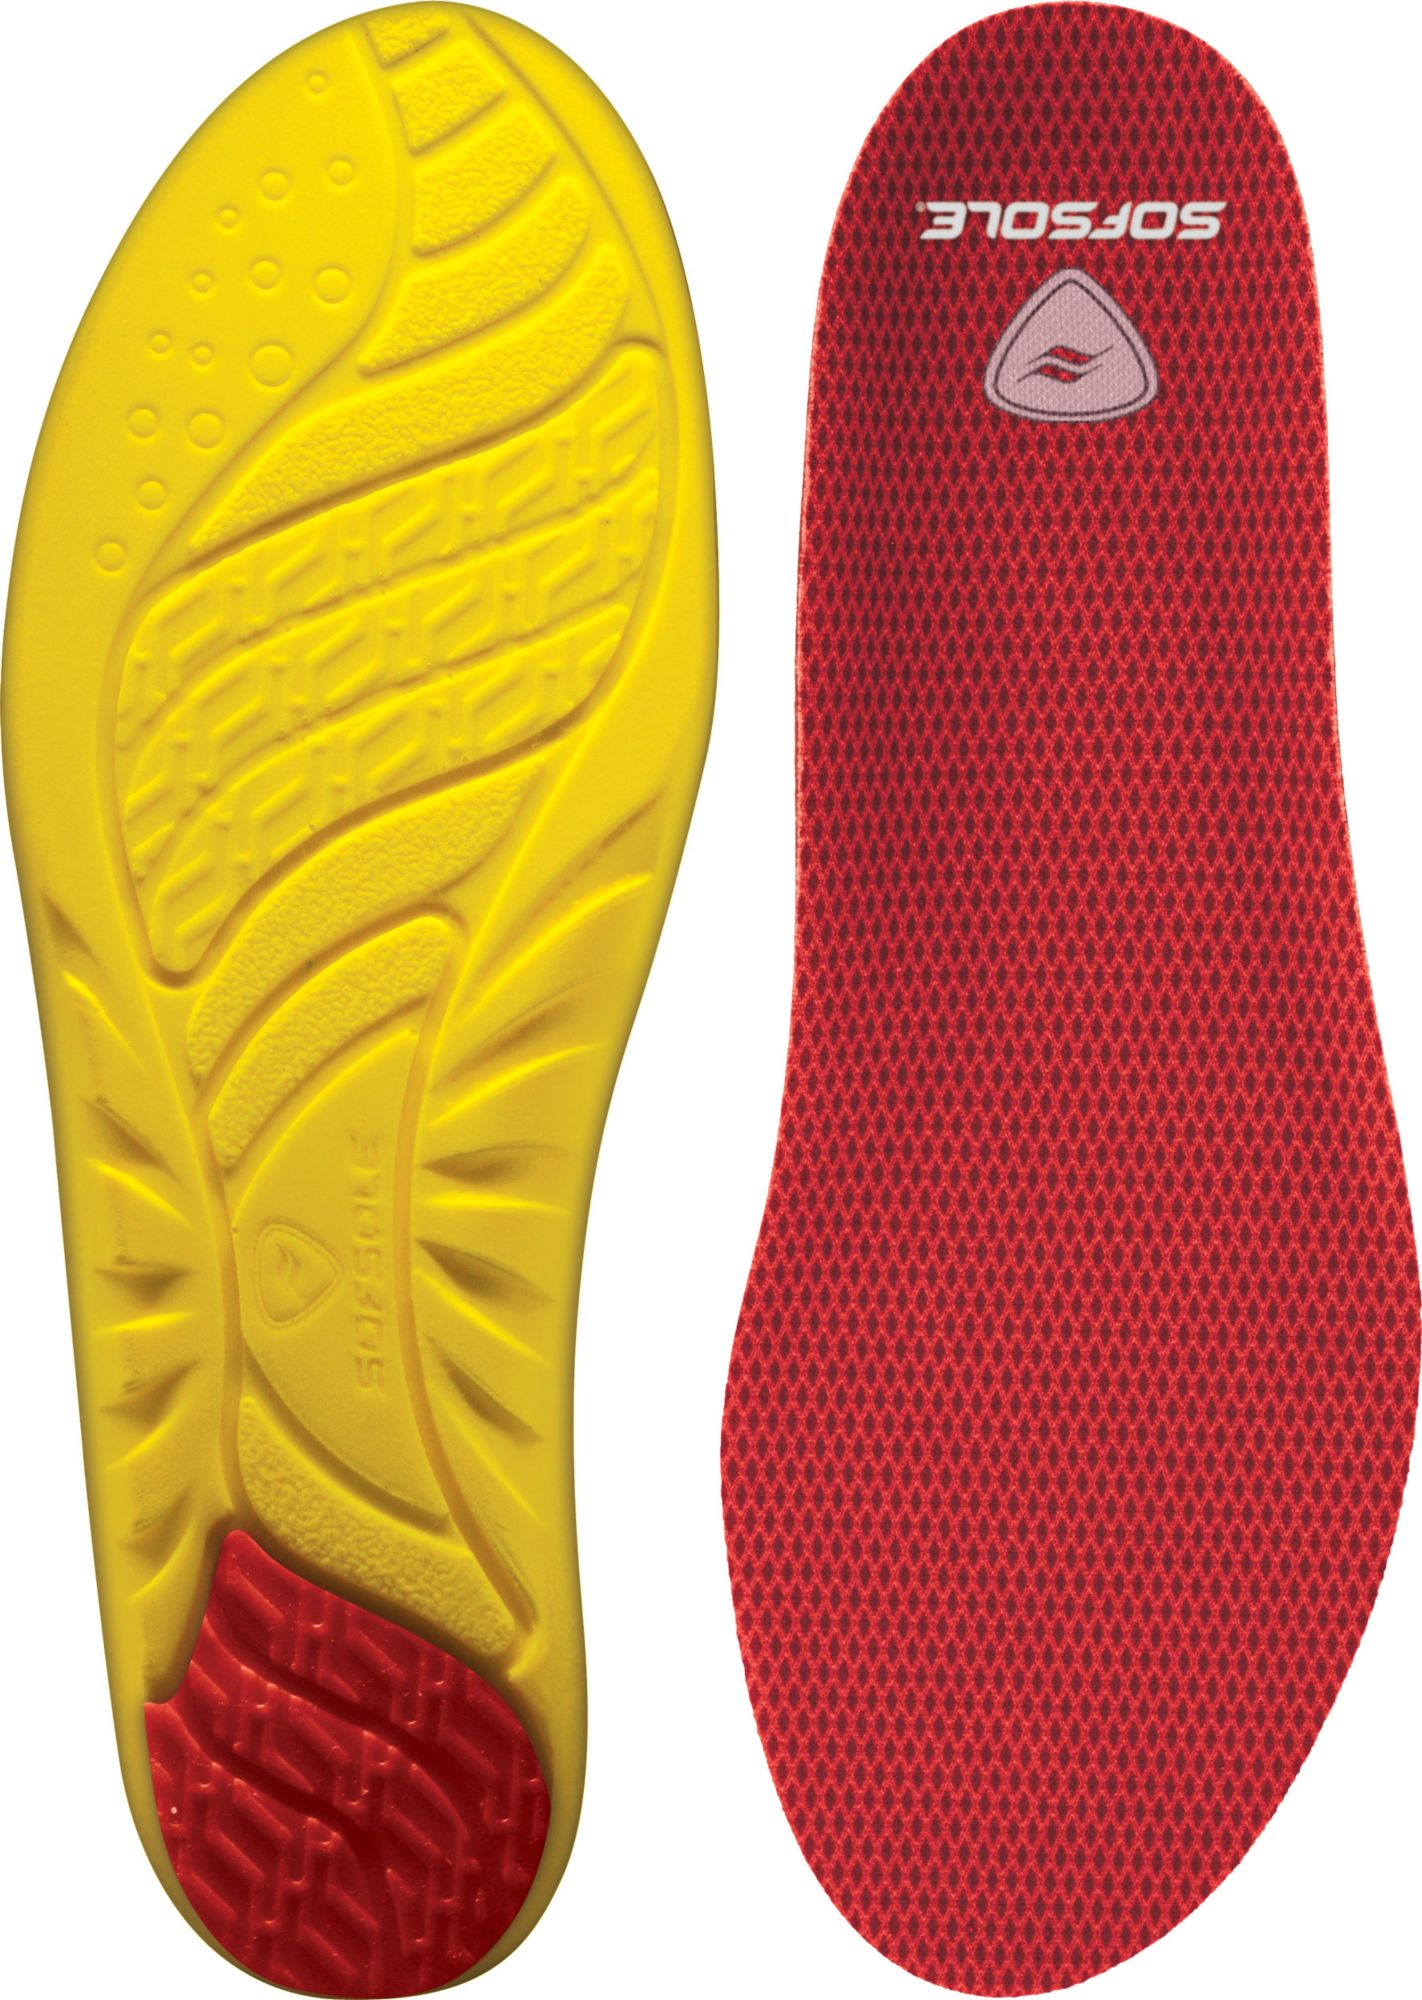 Sof Sole Arch Insole  Dicks Sporting Goods-7537